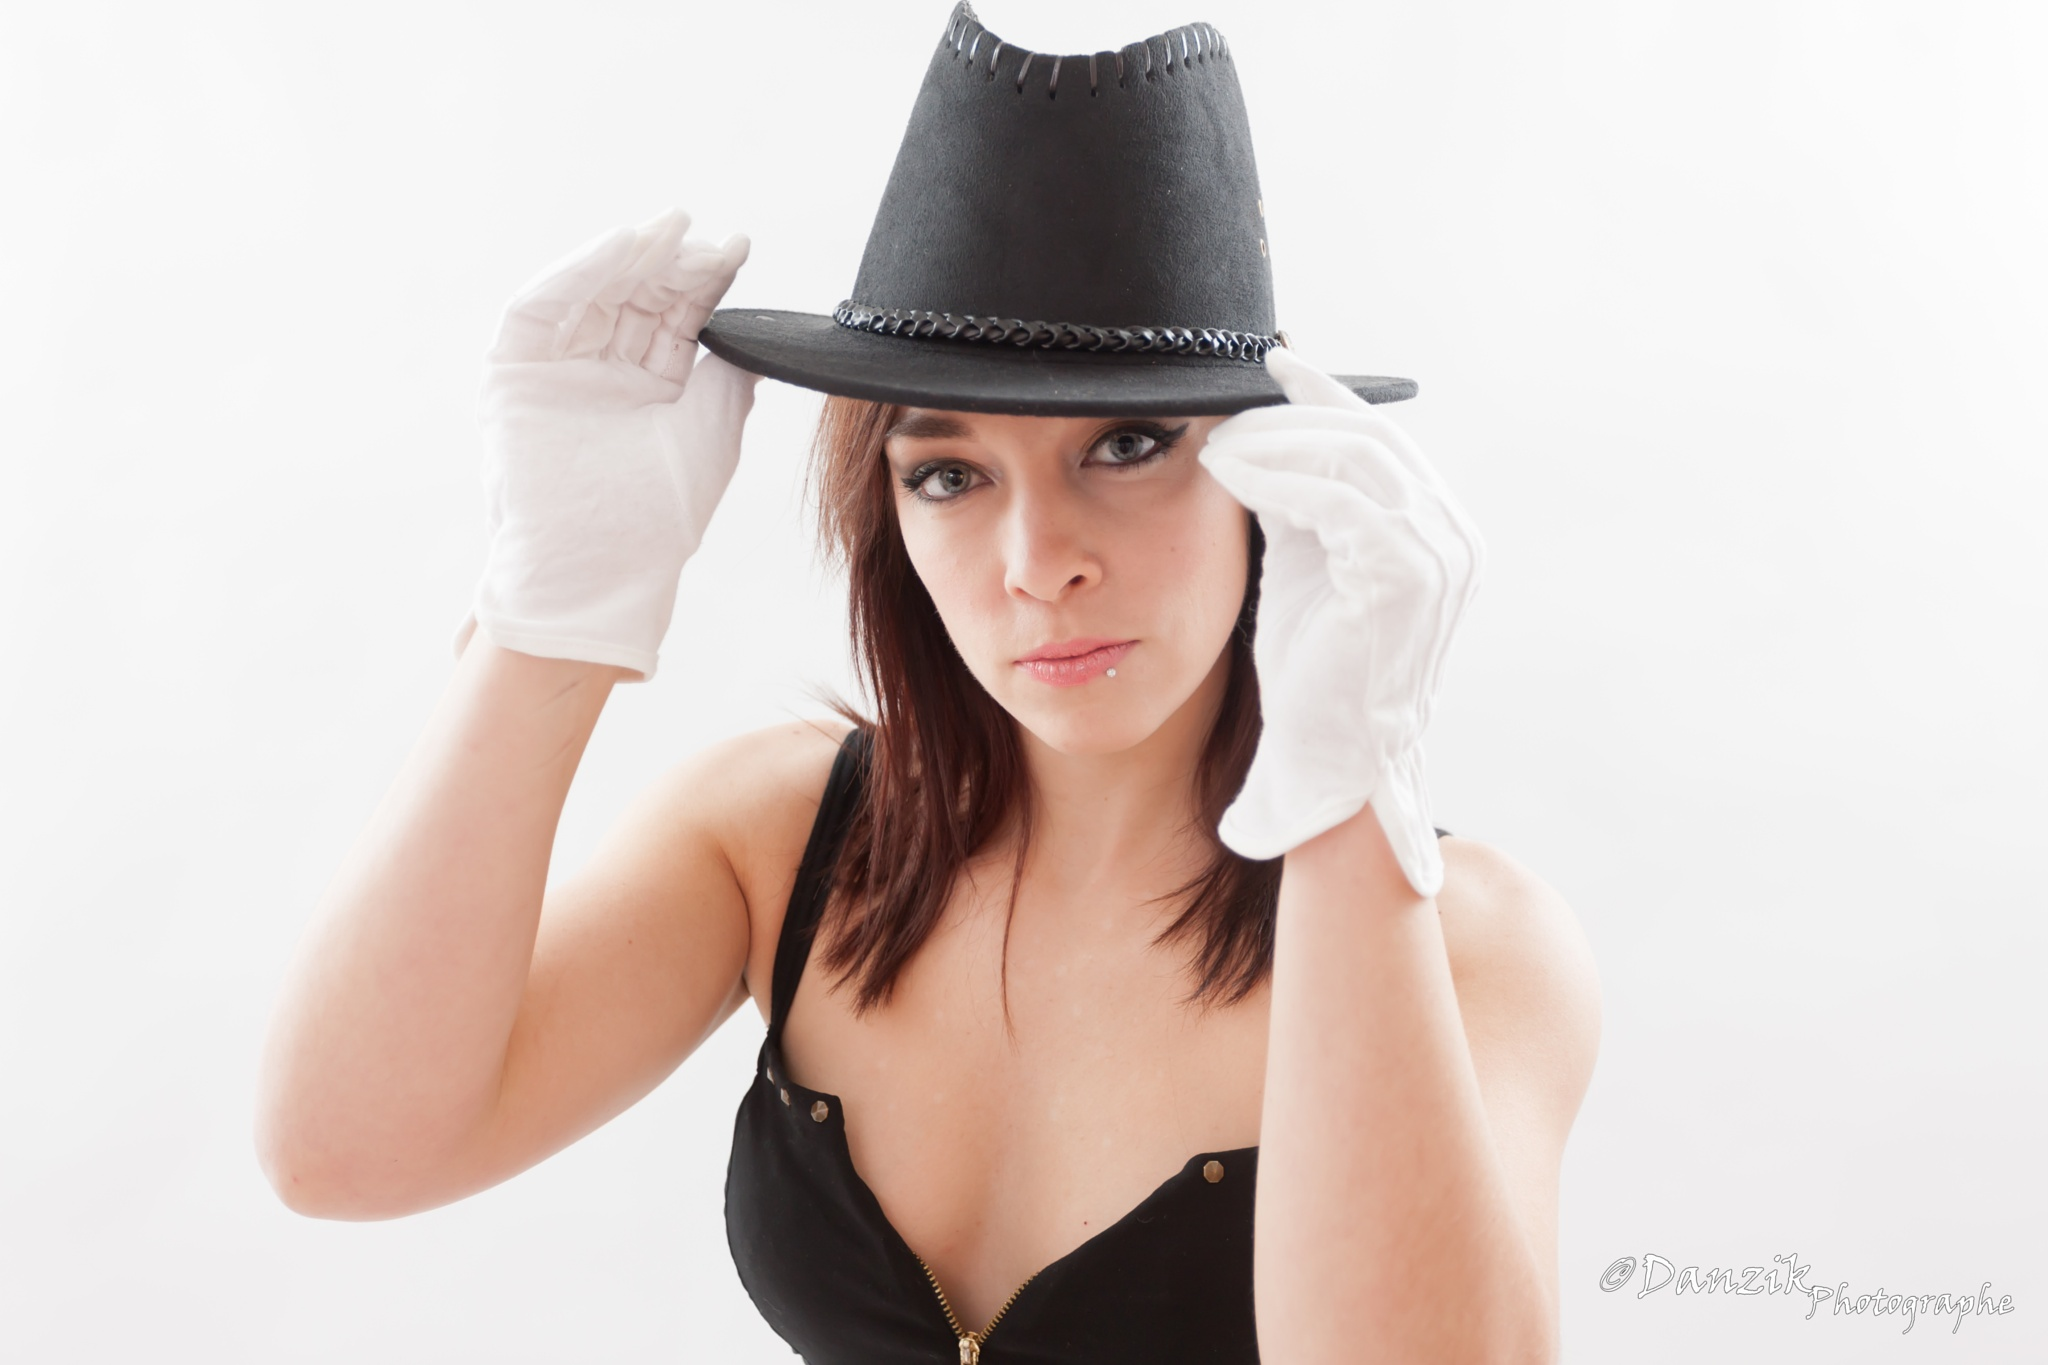 le chapeau  by Danzik Photographe